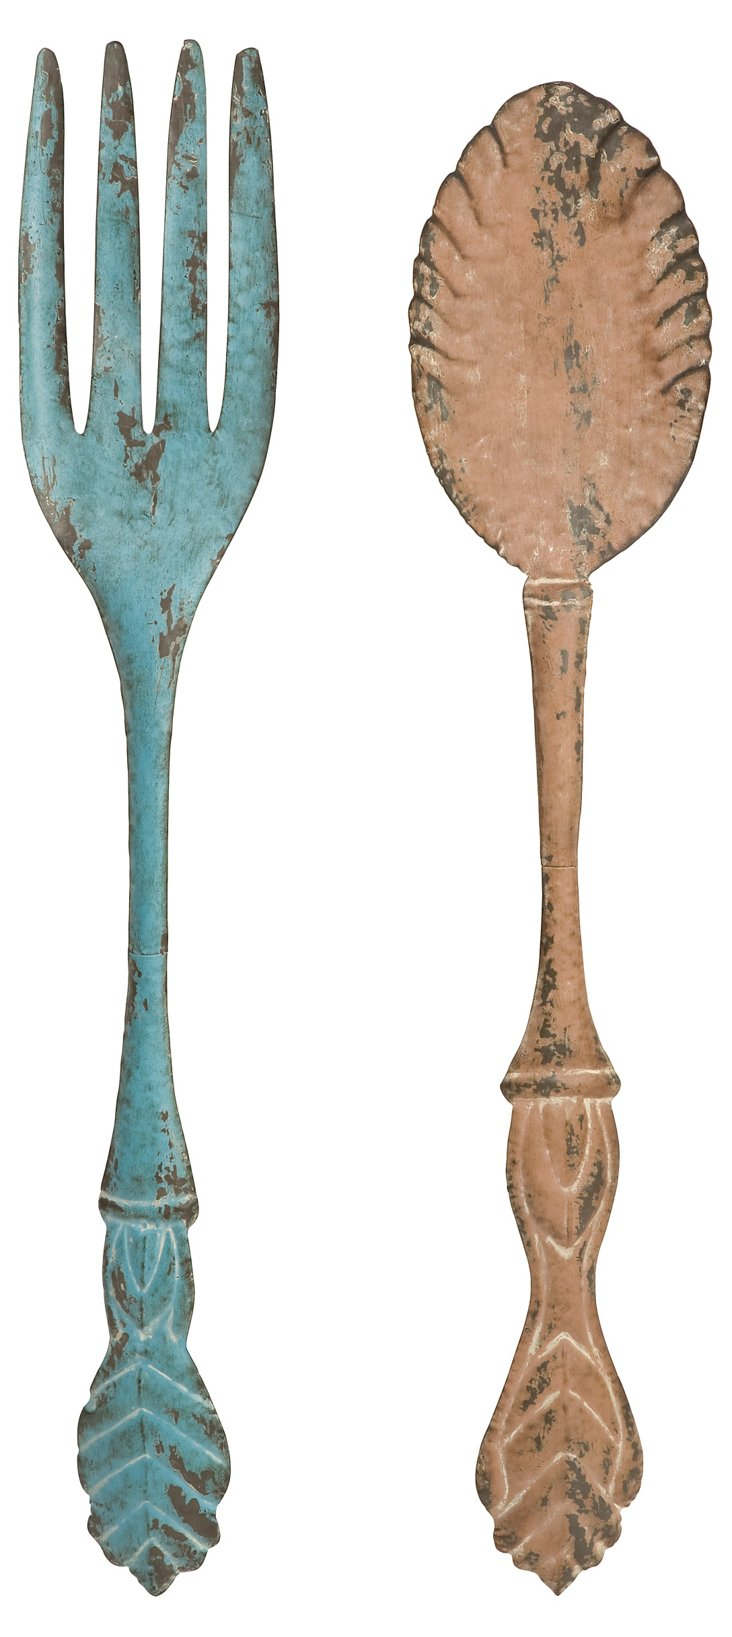 Mont Fork & Spoon Wall Decor, Asst. of 2